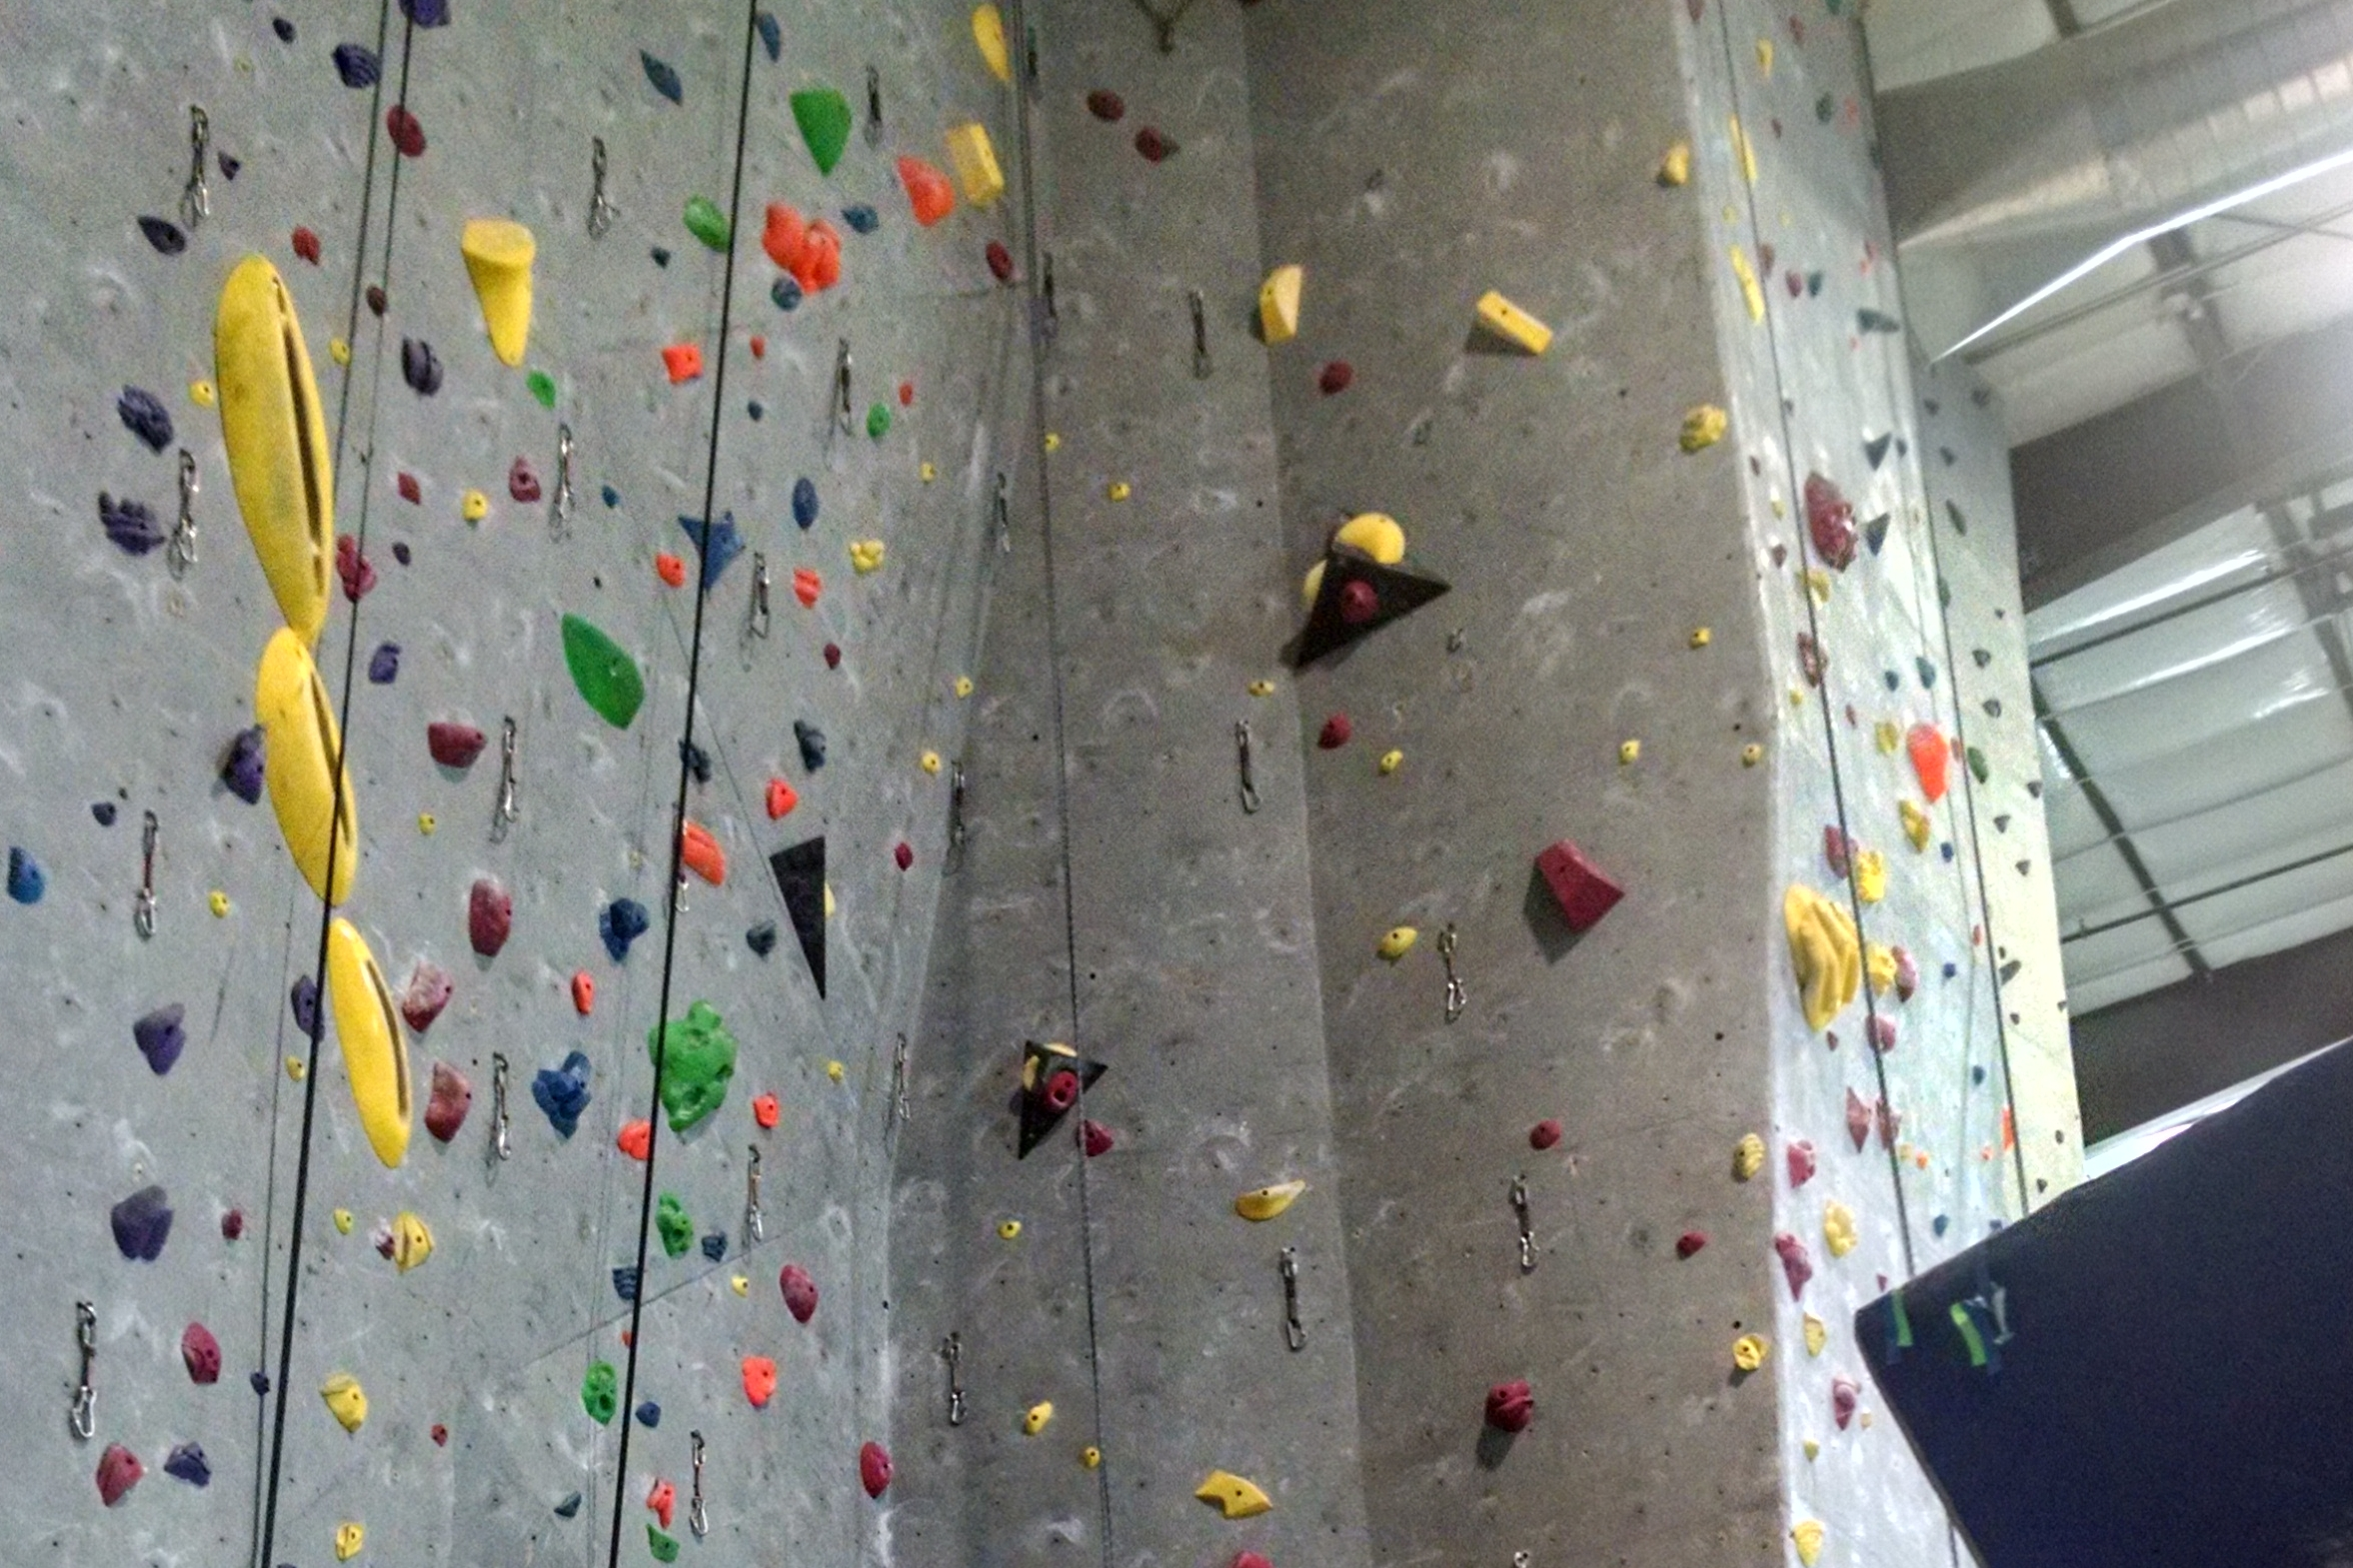 bEGINNER cLIMBERS - eXPERIENCED clIMBERS - First Visit